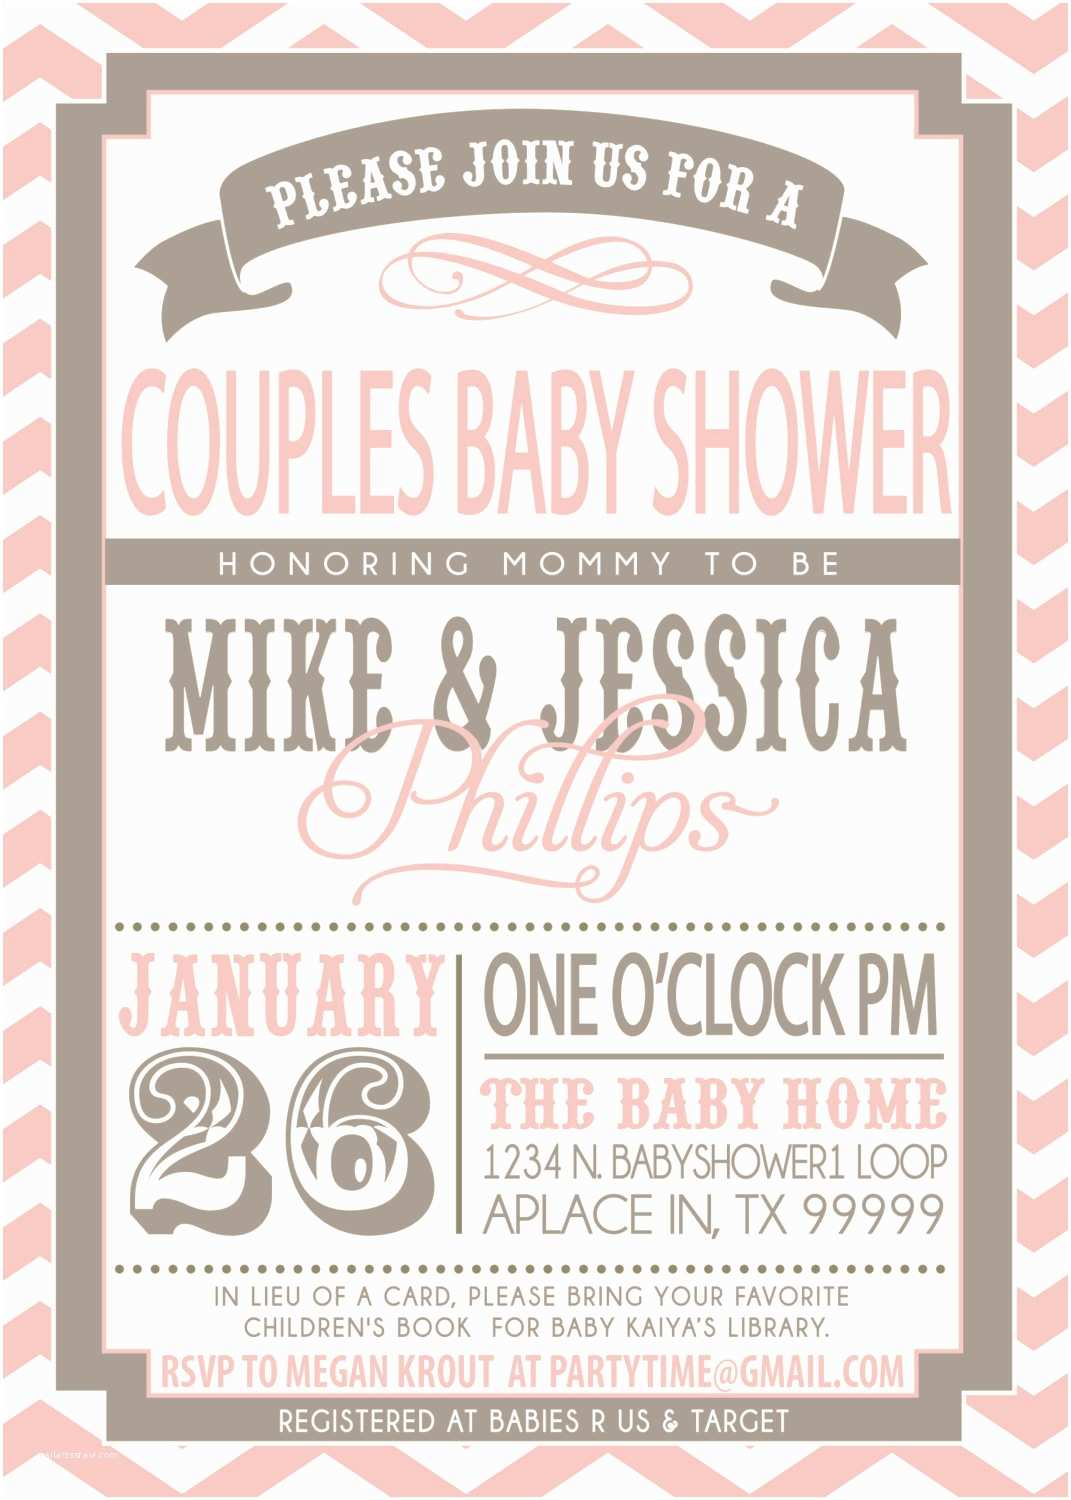 Coed Baby Shower Invitations Enchanting Couples Baby Shower Invitations Girl theruntime